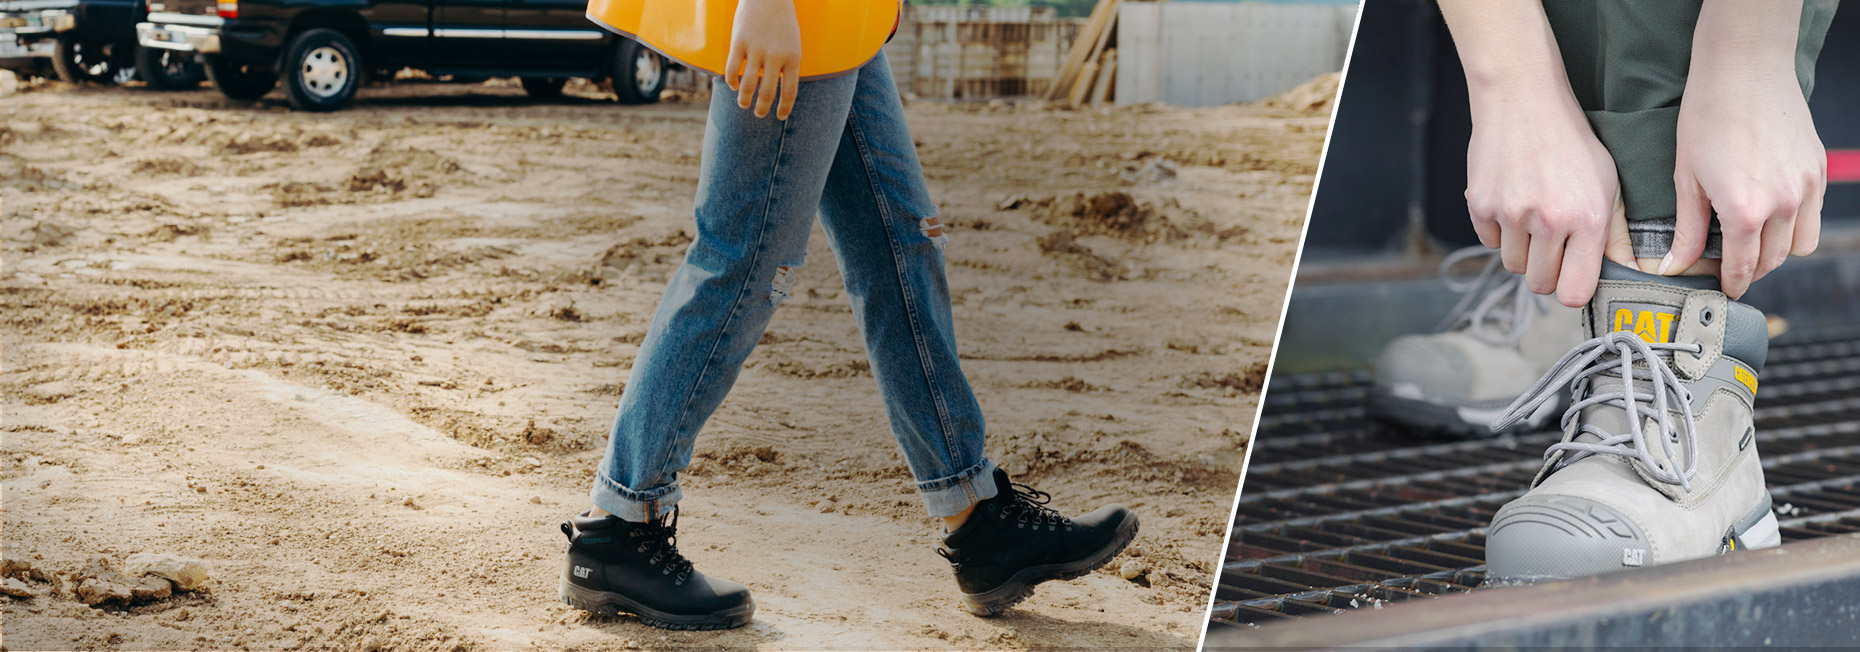 A woman wearing safety toe boots while walking thru a construction site.